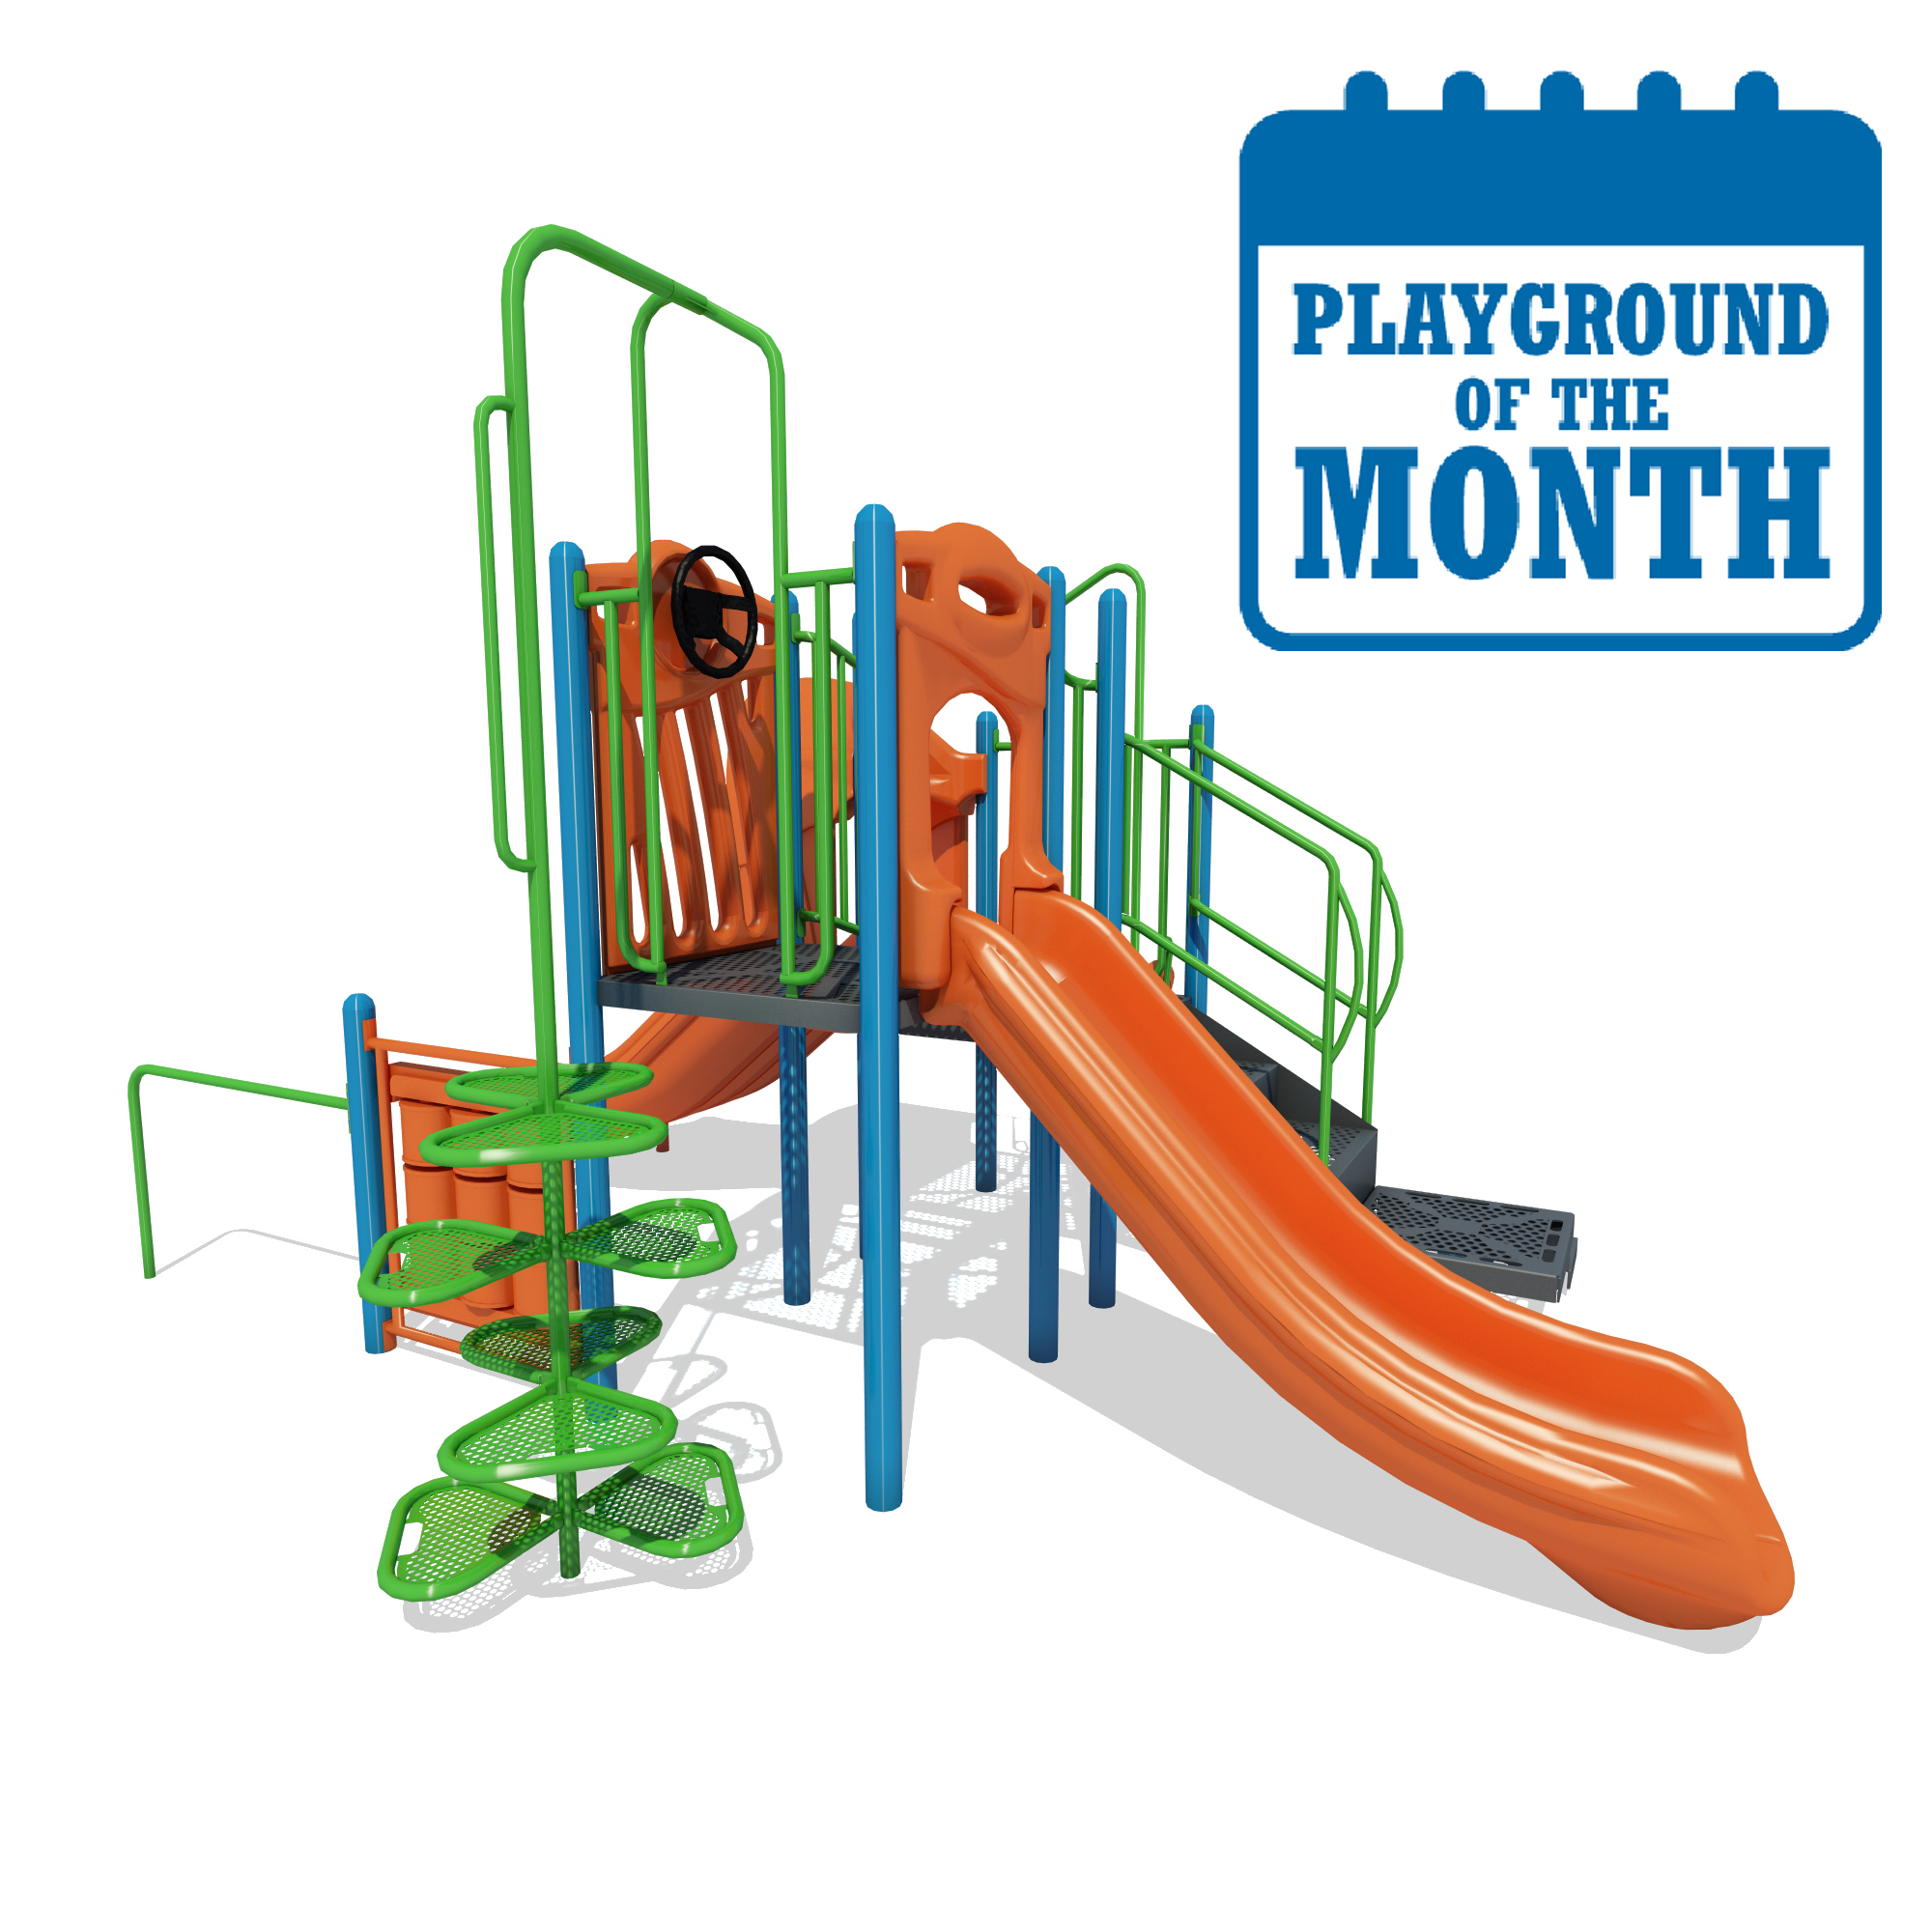 Playground of the Month: Jax's Place